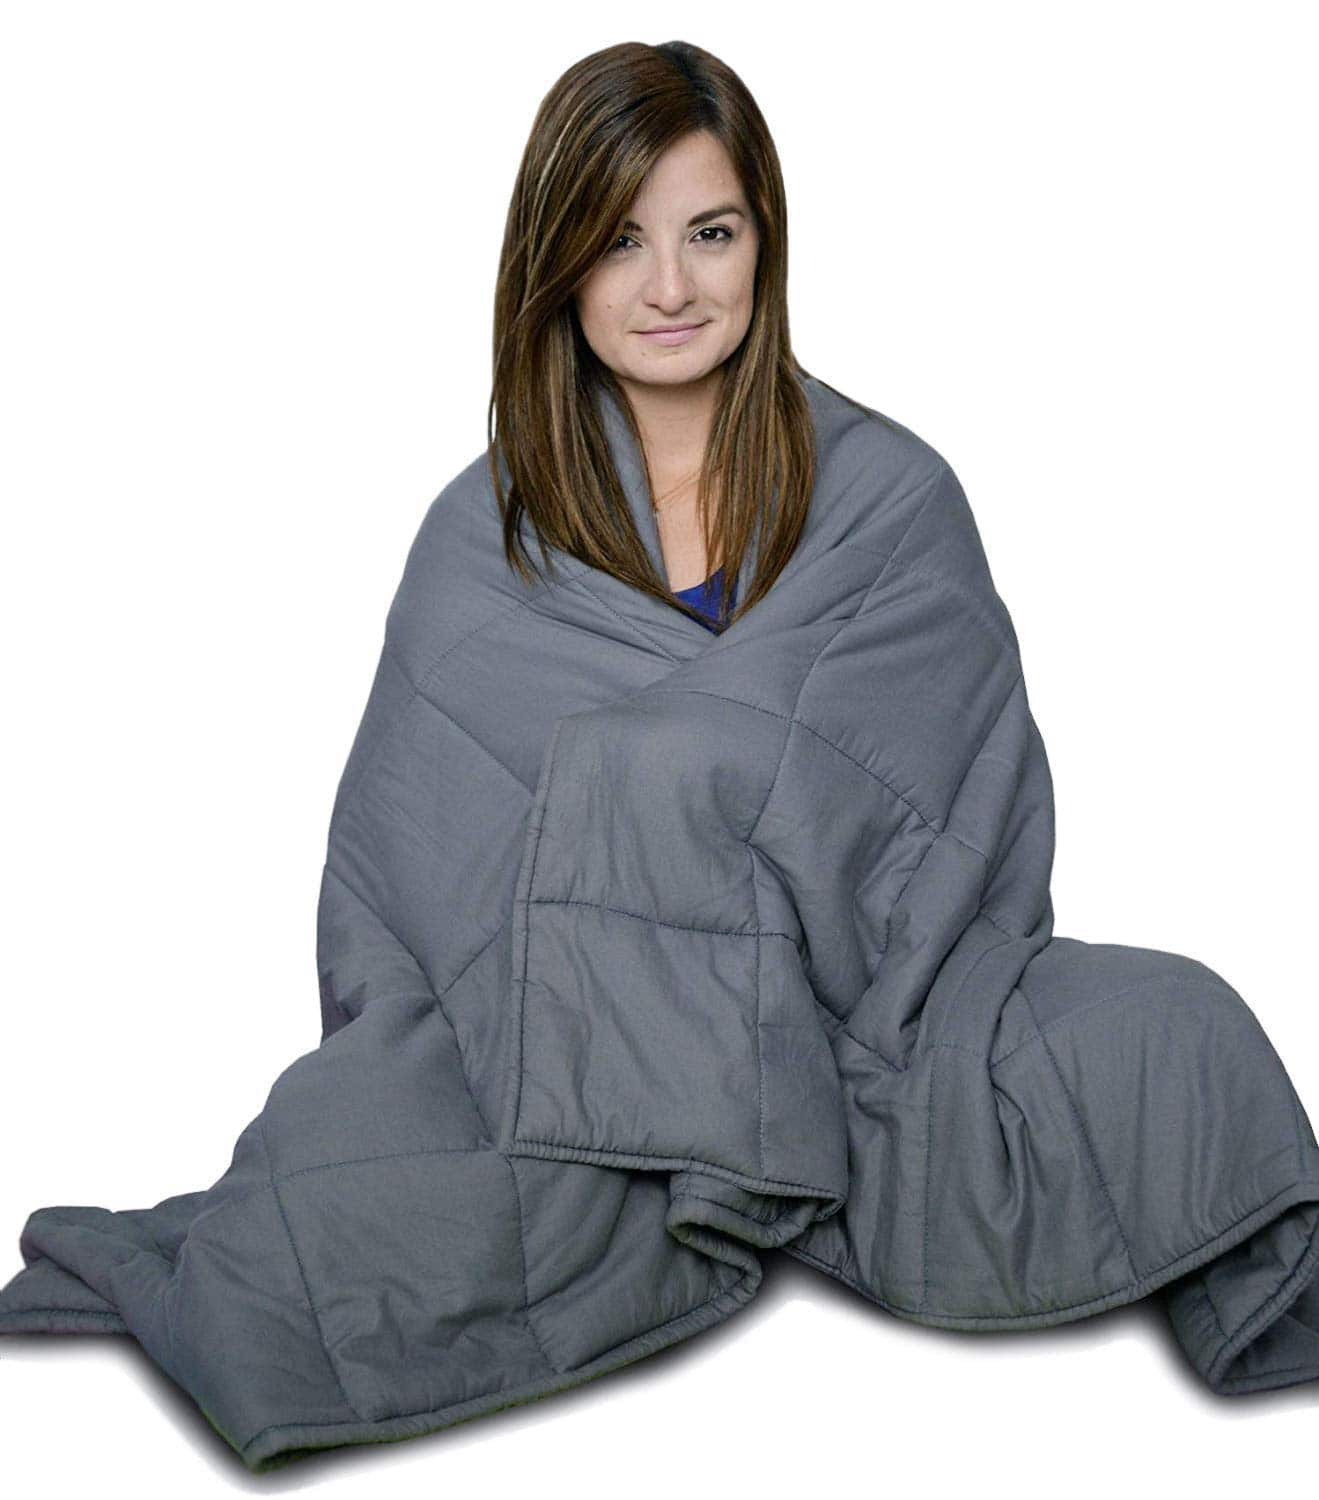 36643afb2babf Cuddlebug Weighted Blanket (via Amazon Giveaways) - 15 lbs 48